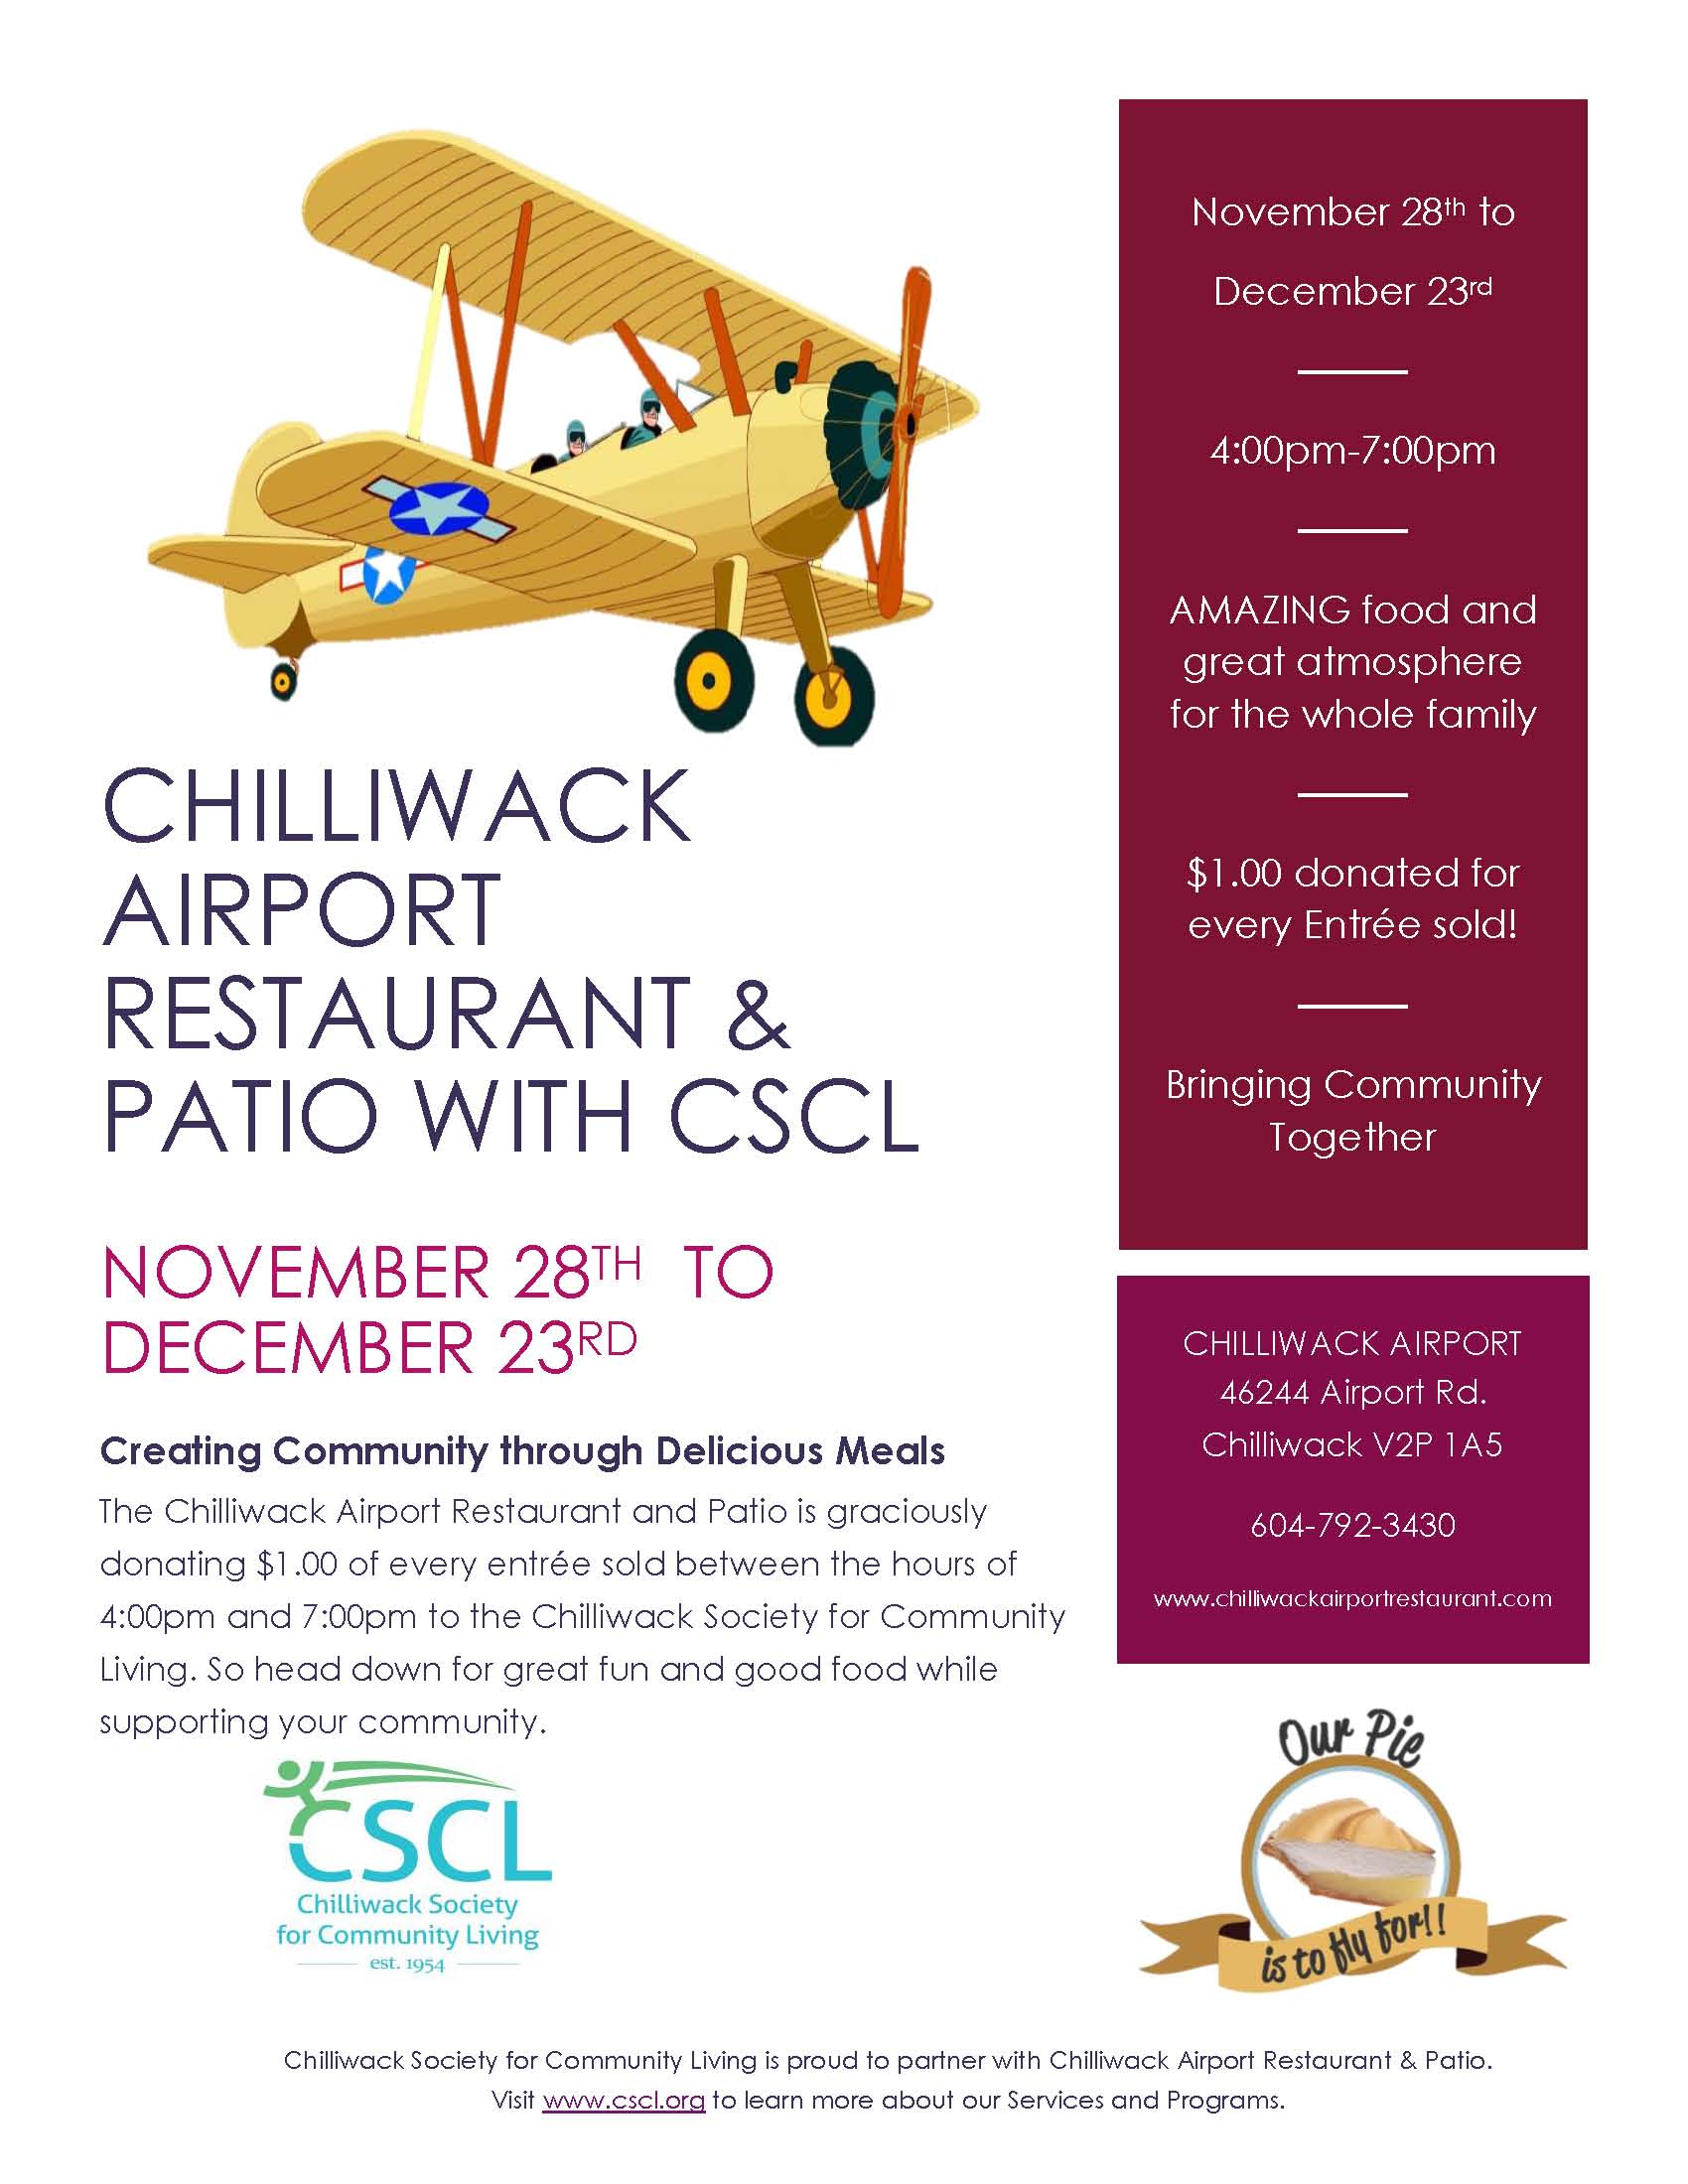 Chilliwack Airport & CSCL